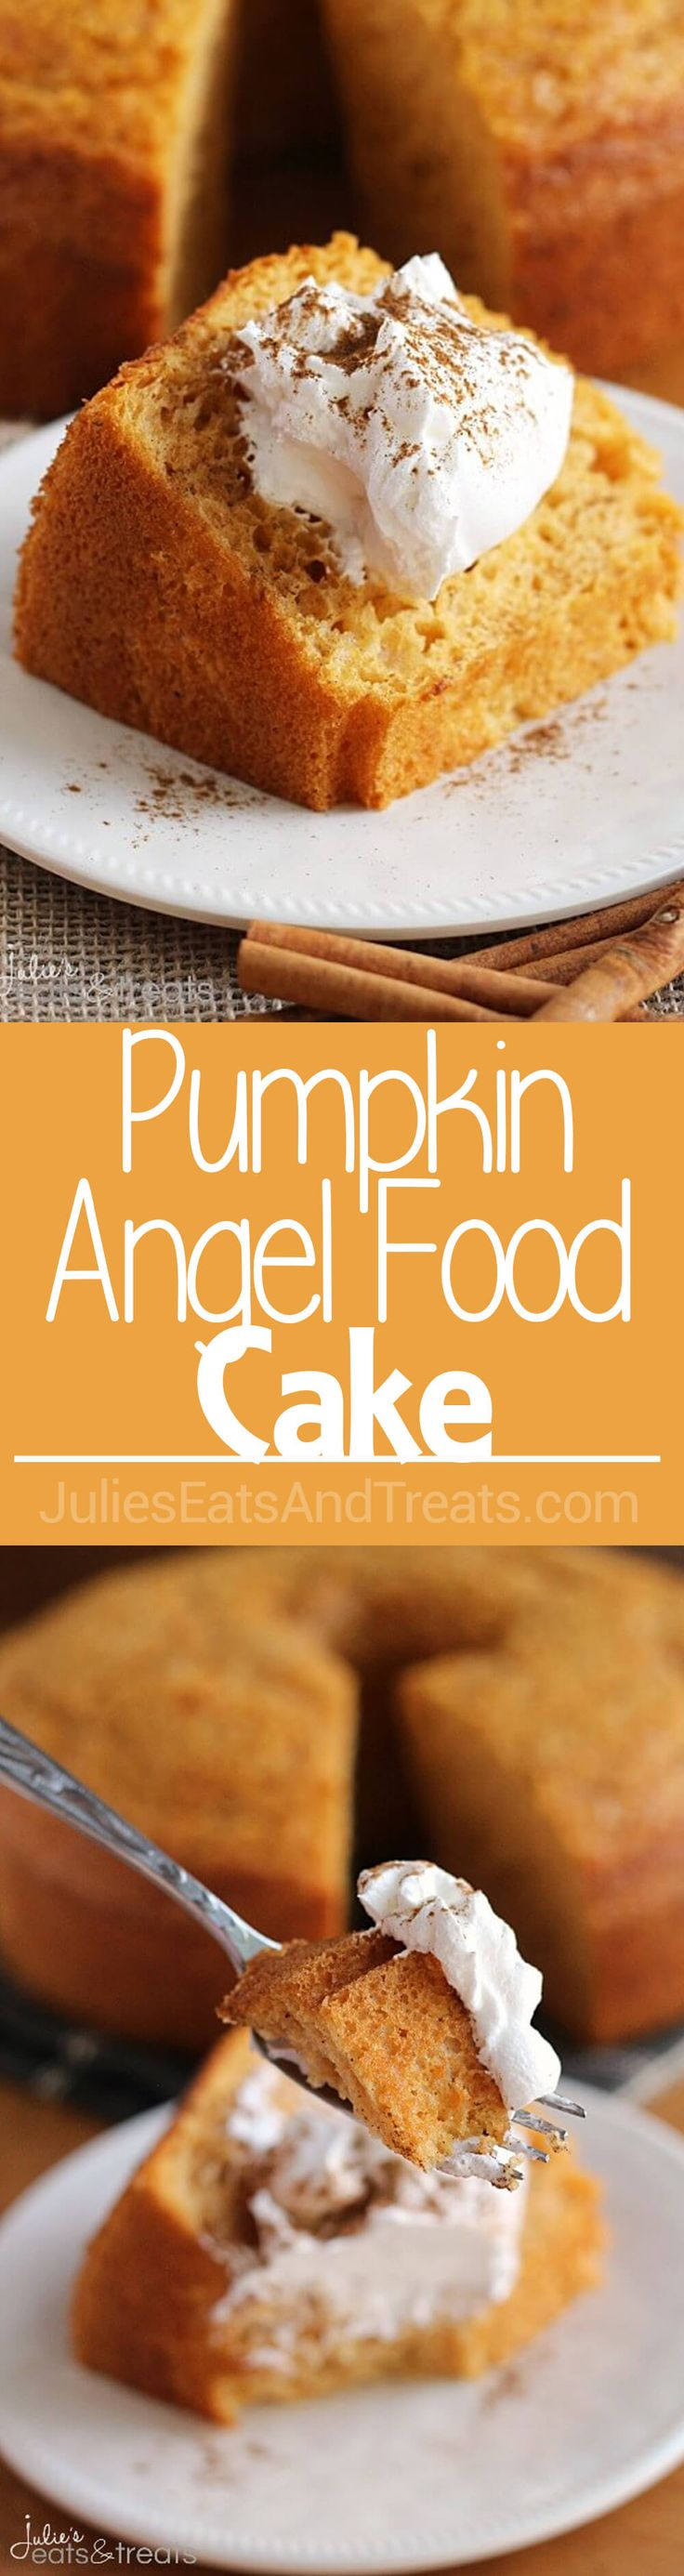 Pumpkin Angel Food Cake ~ Light, Airy Angel Food Cake with a Hint of Pumpkin! ~ http://www.julieseatsandtreats.com